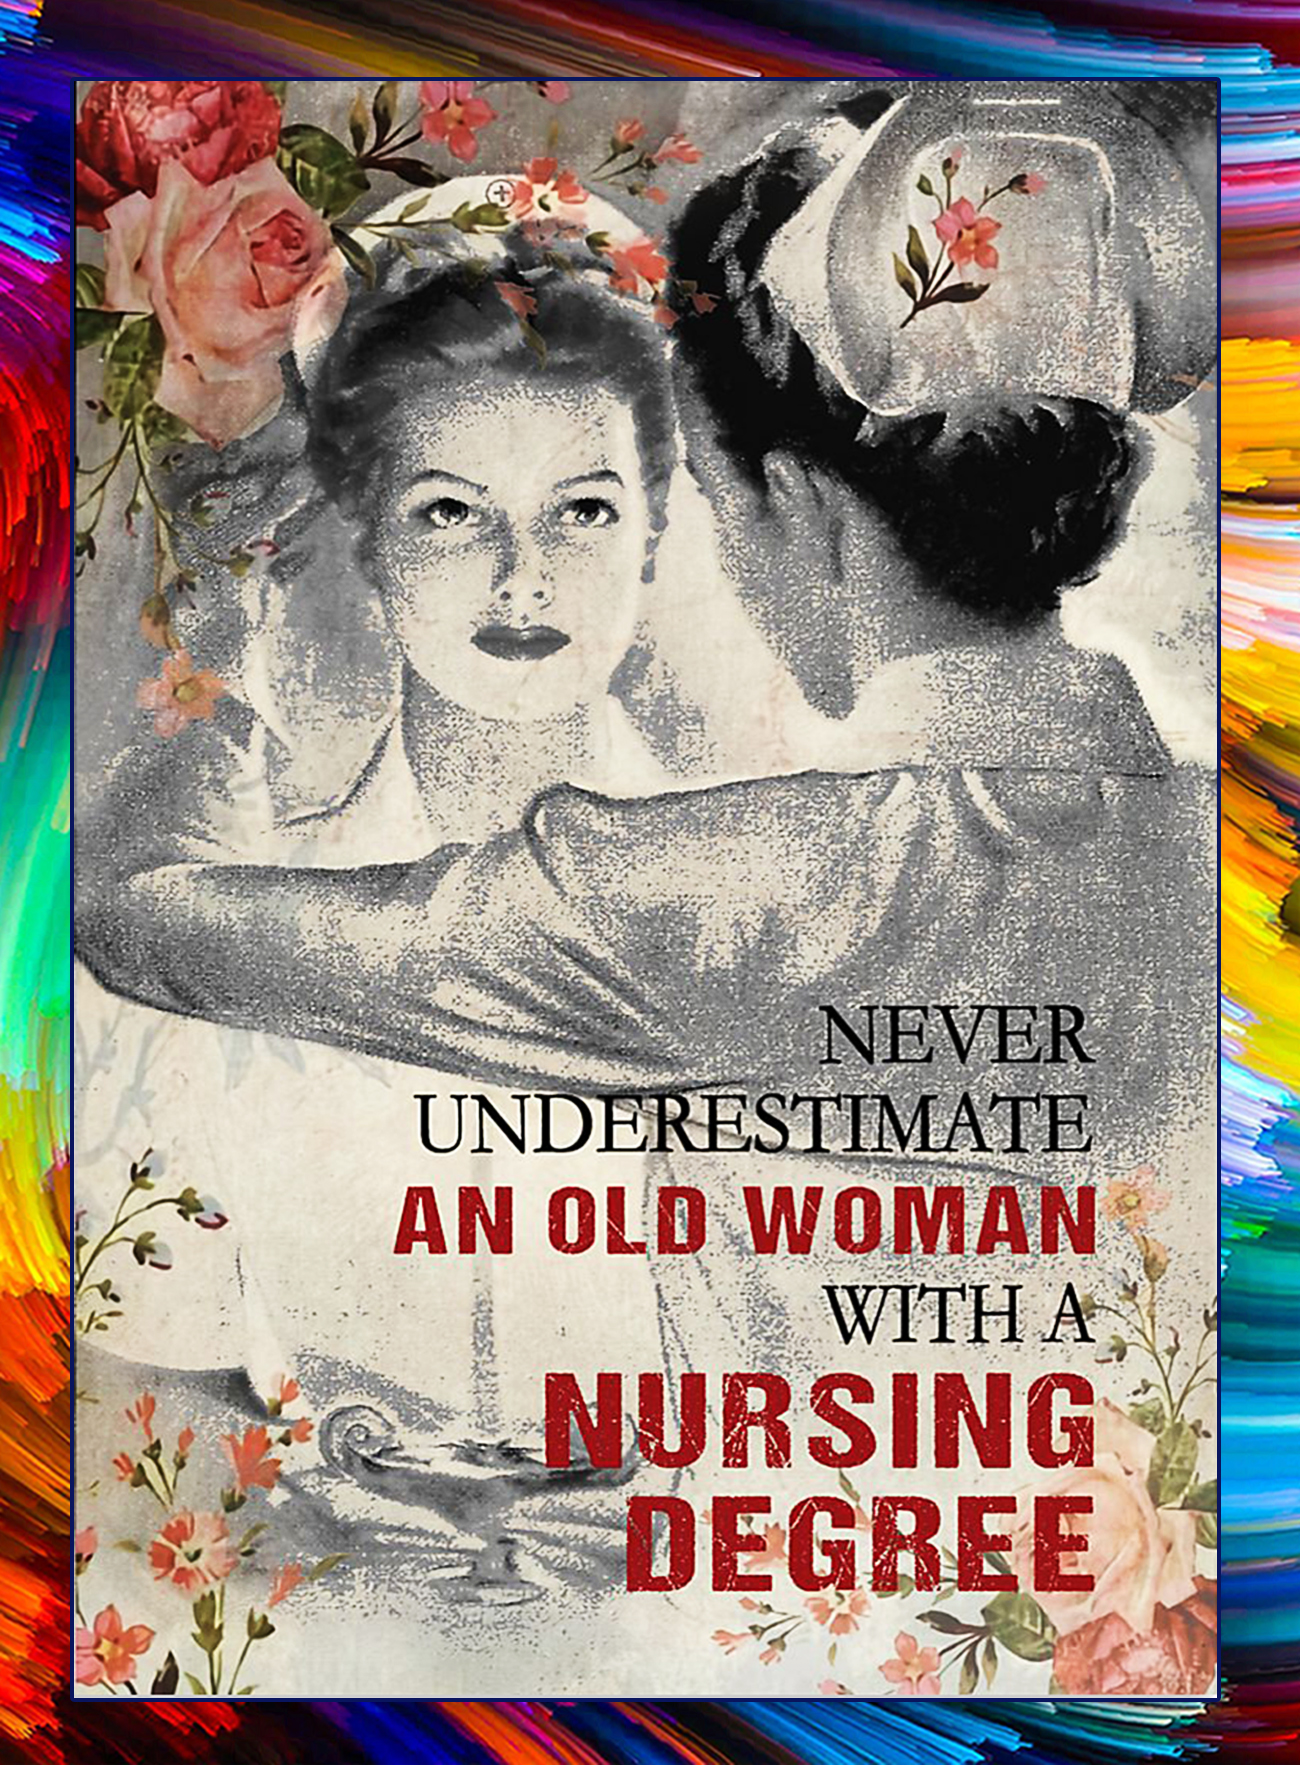 Never underestimate an old woman with a nursing degree poster - A4